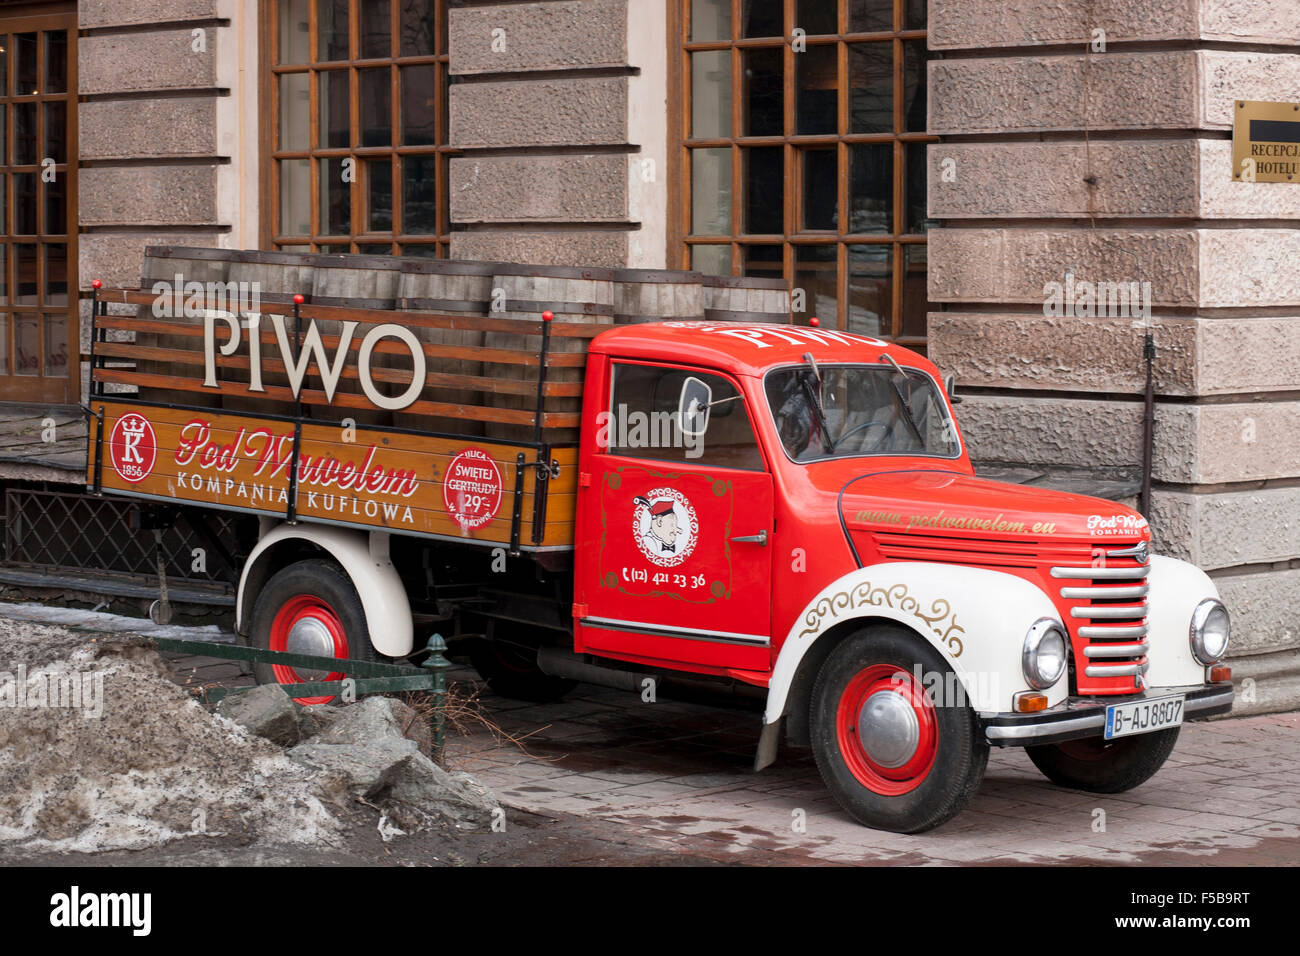 Old fashioned beer truck in Warsaw, Poland Stock Photo: 89374316 - Alamy